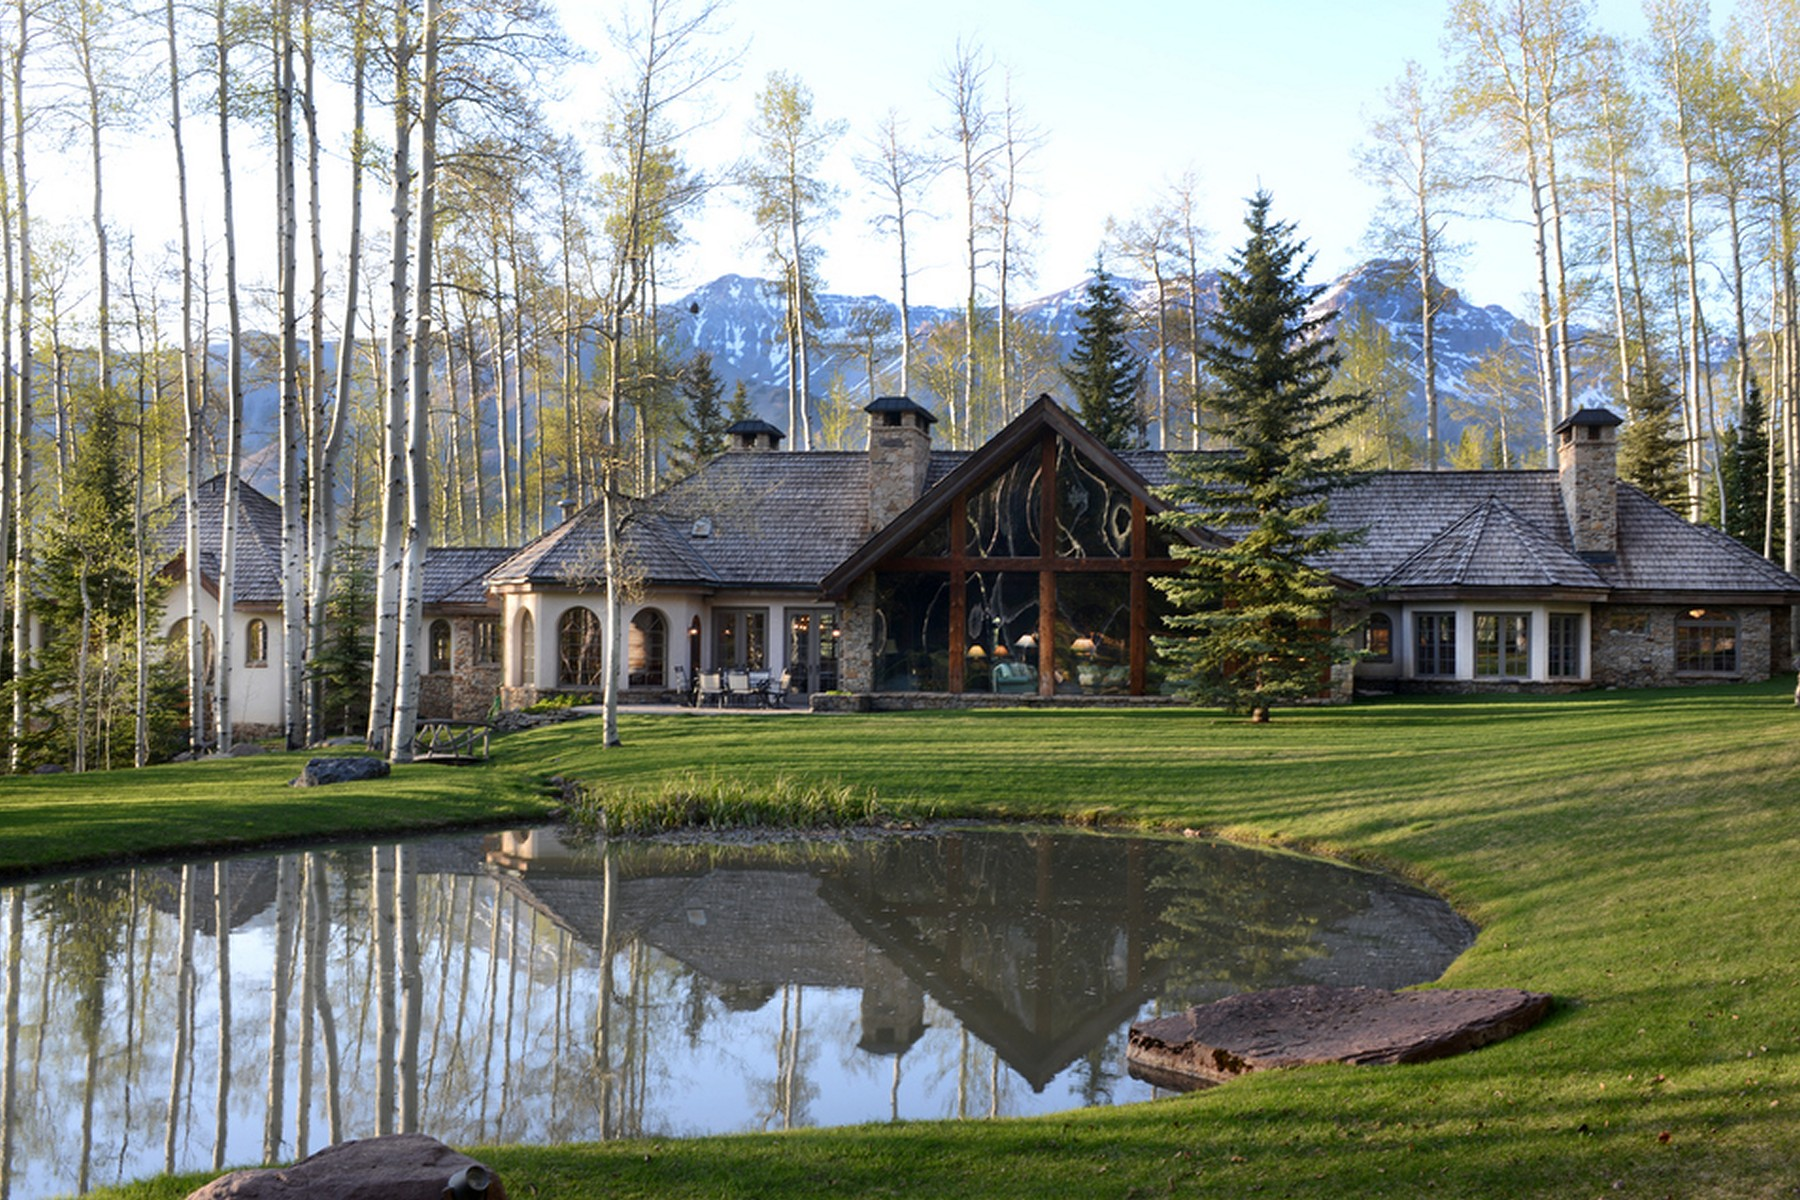 Single Family Home for Sale at 121 Yellow Brick Road Telluride, Colorado 81435 United States